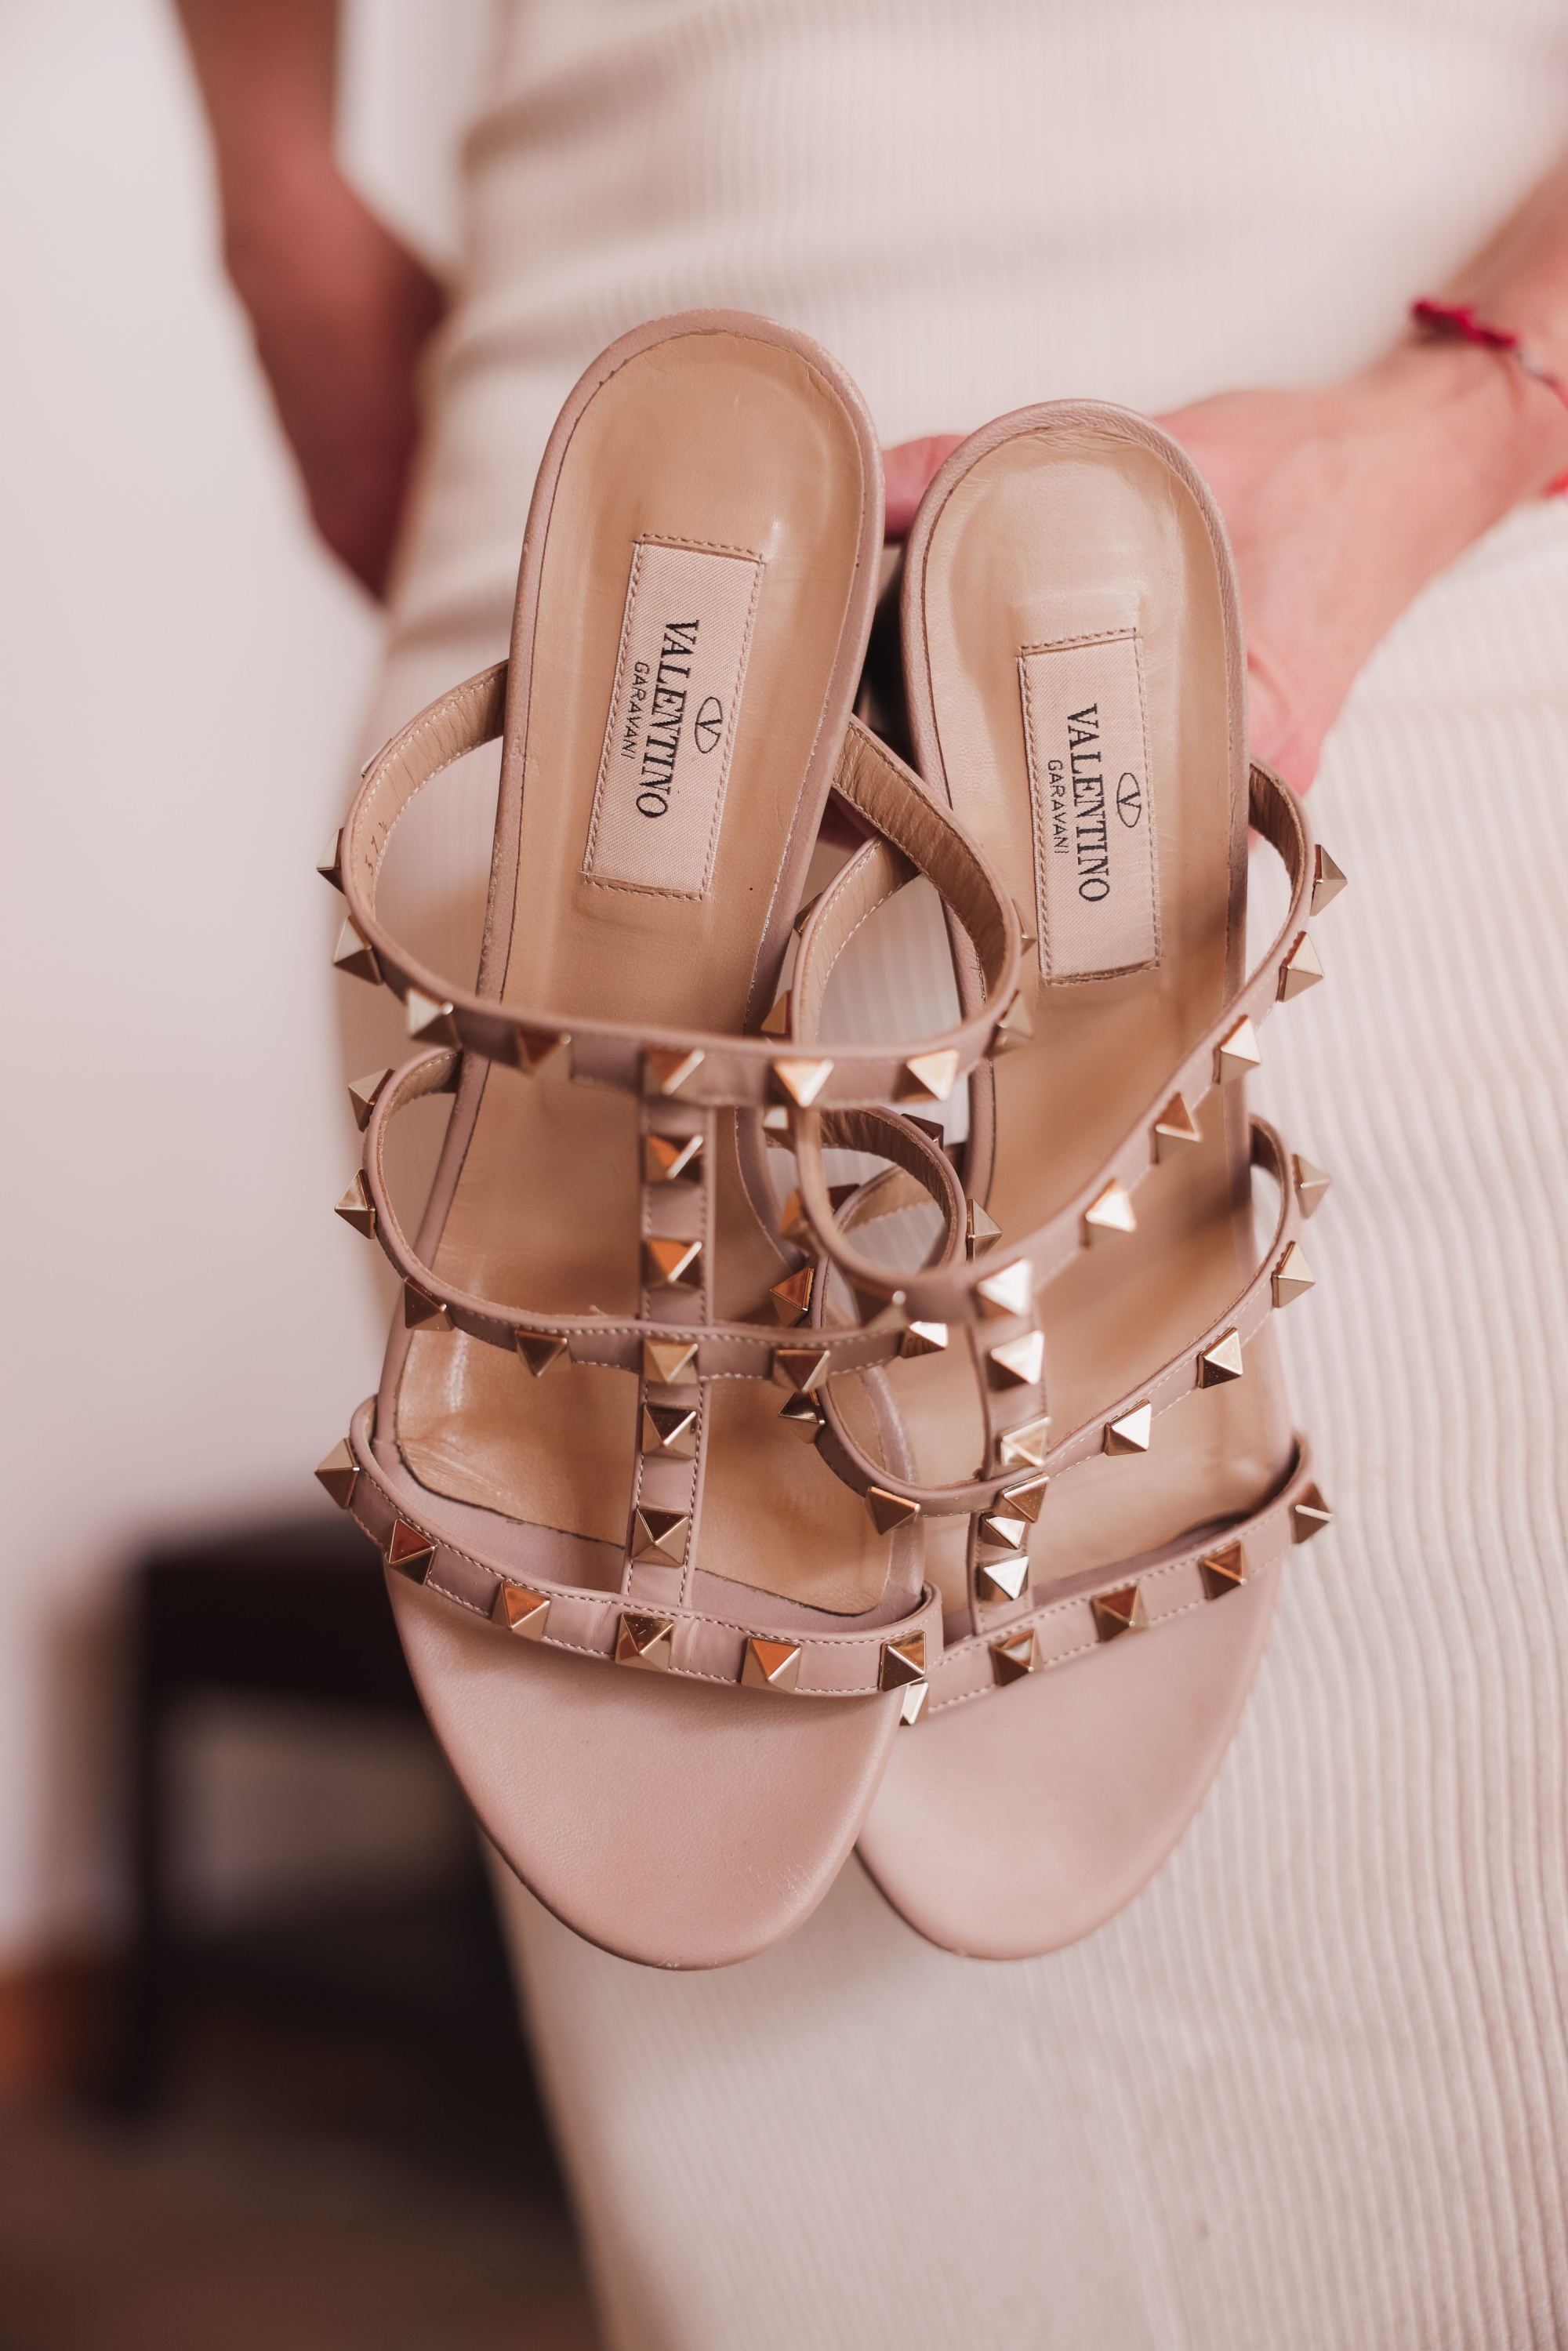 Valentino Rockstud sandals in beige paired with white knit tank dress, valentino rockstud sandals review